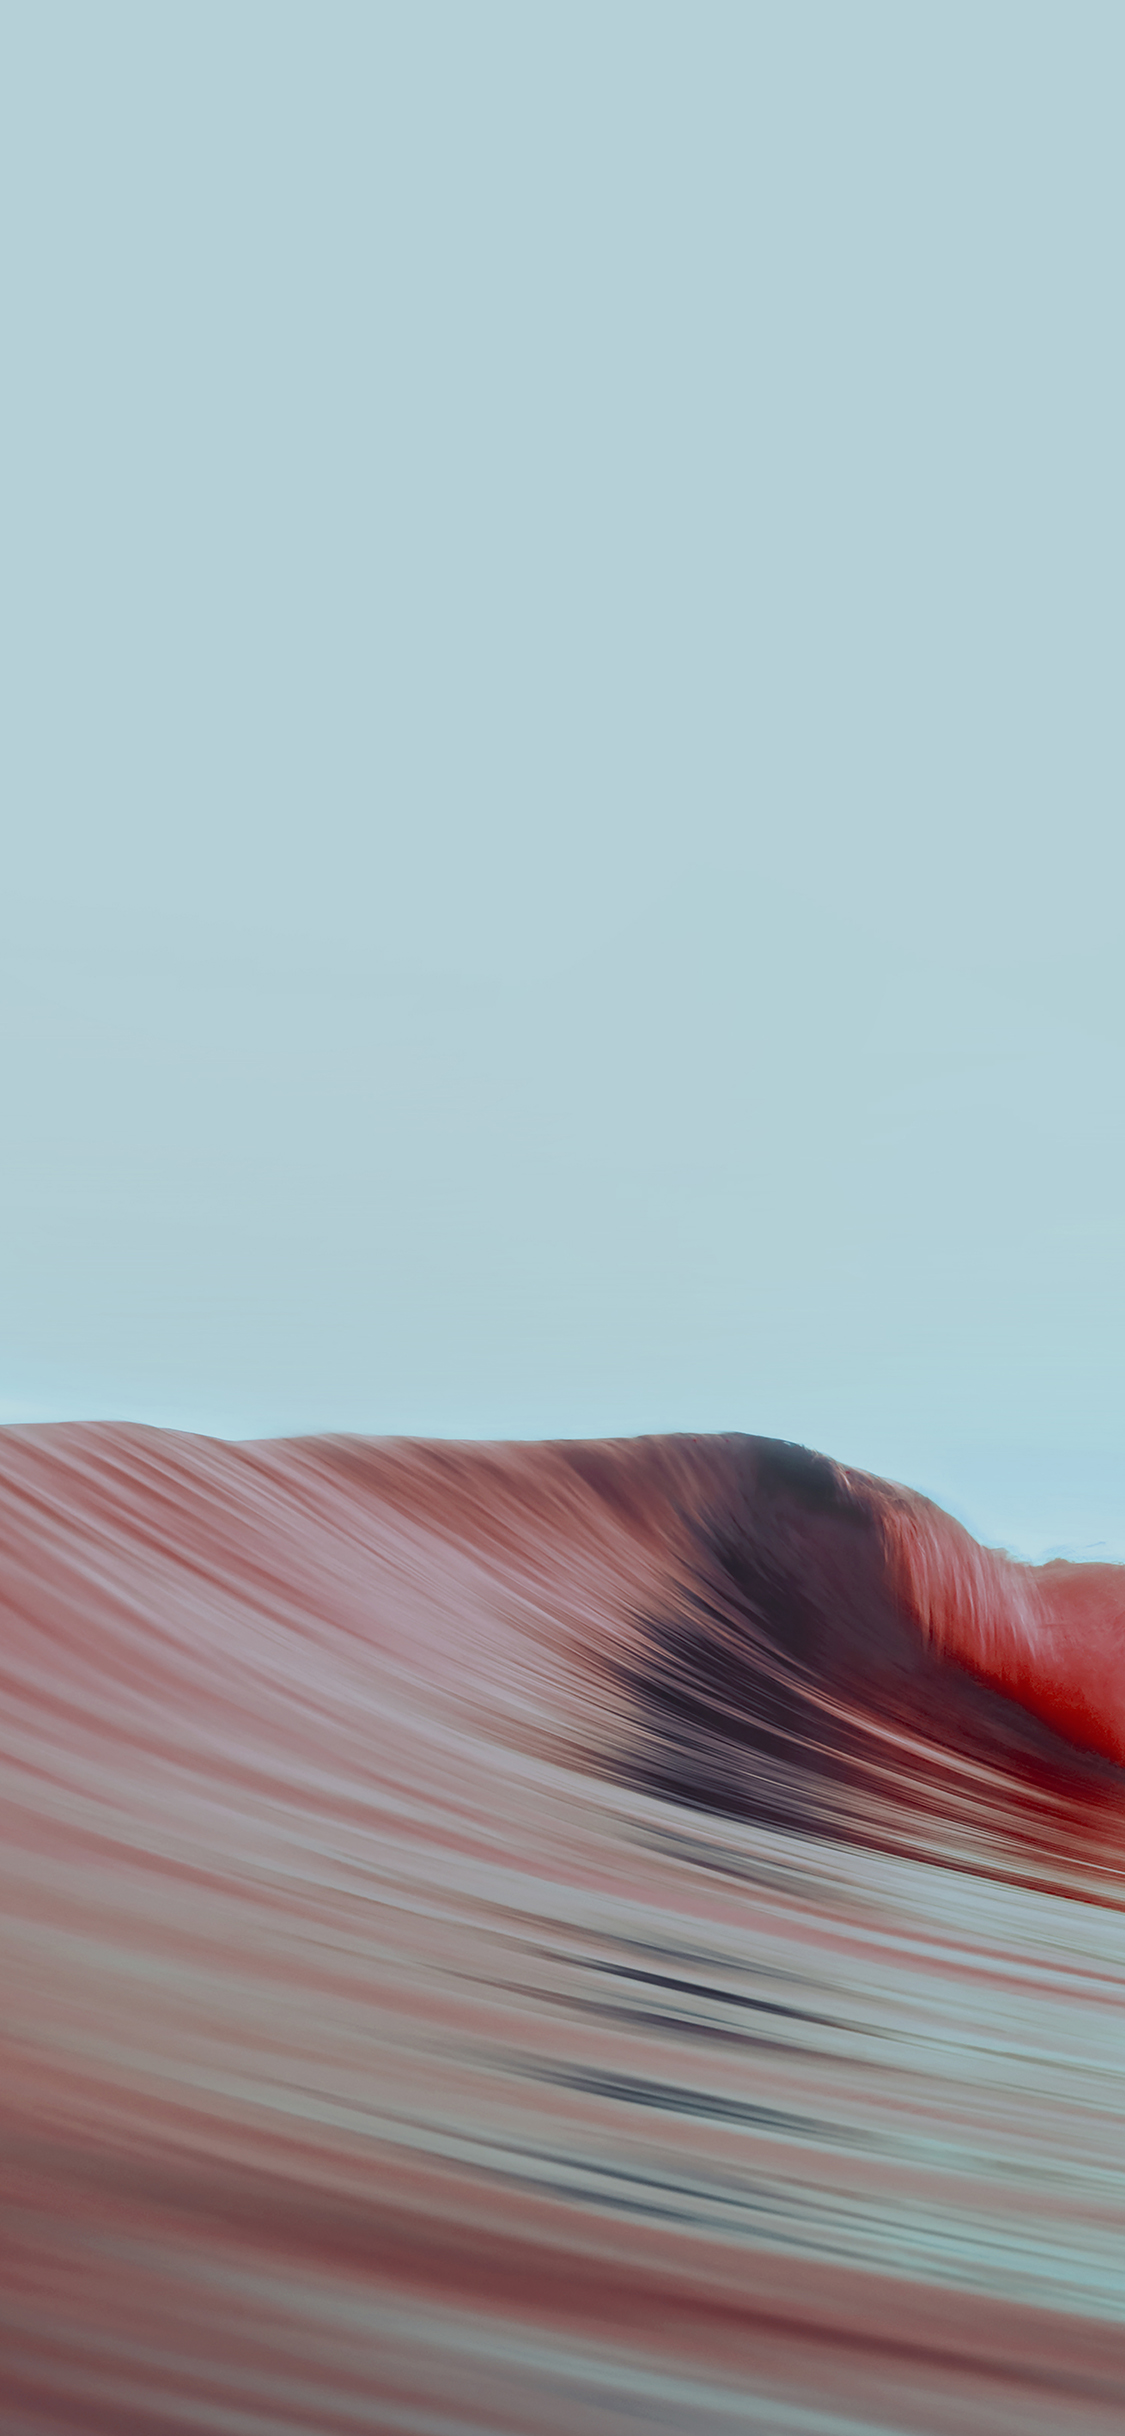 iPhoneXpapers.com-Apple-iPhone-wallpaper-ag50-rolling-wave-art-red-simple-minimal